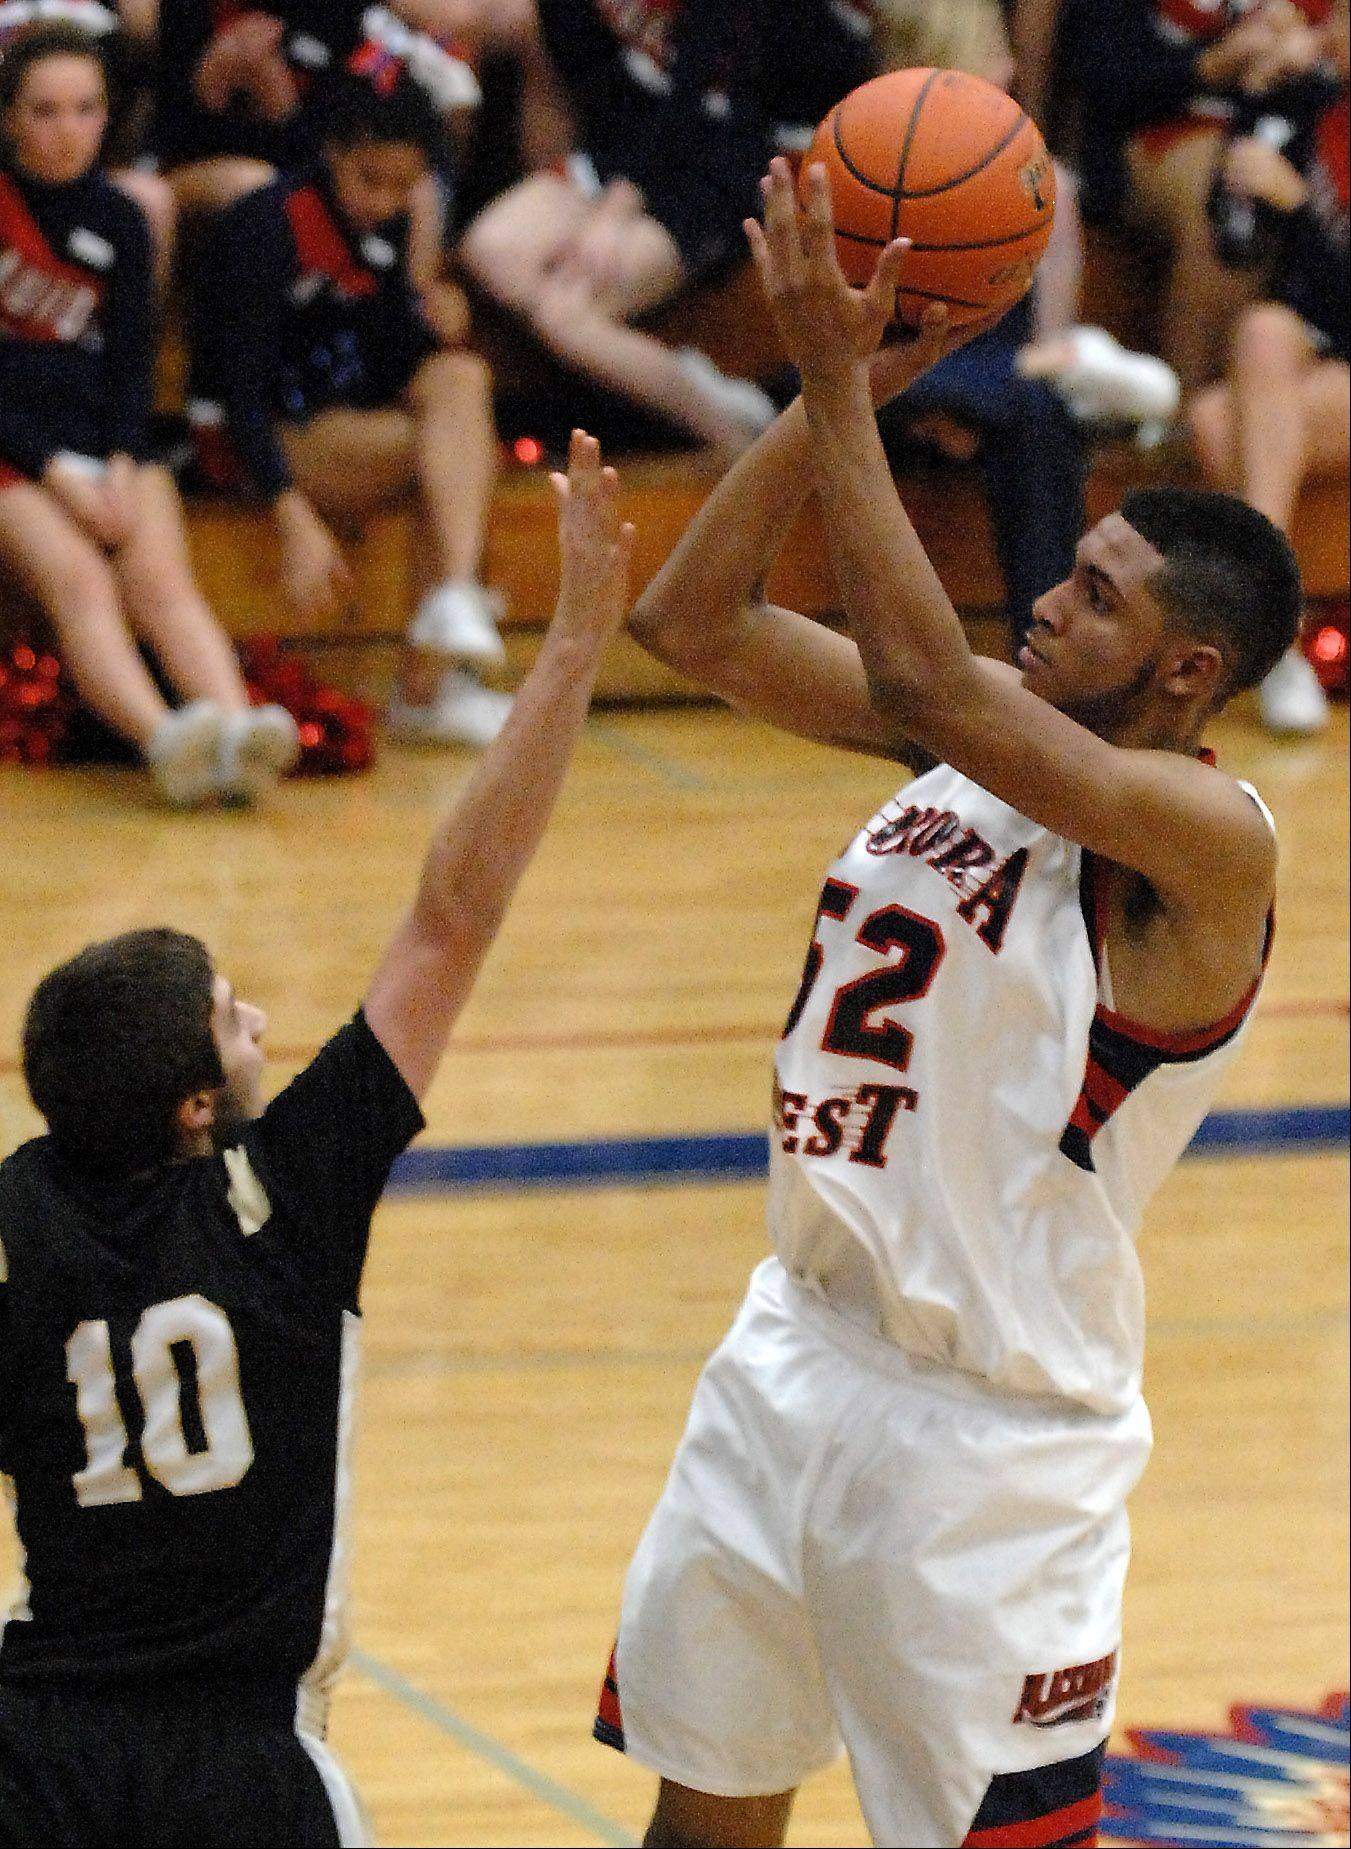 West Aurora's Joshua McAuley shoots and scores over Glenbard North's Paxquale Fiduccia.